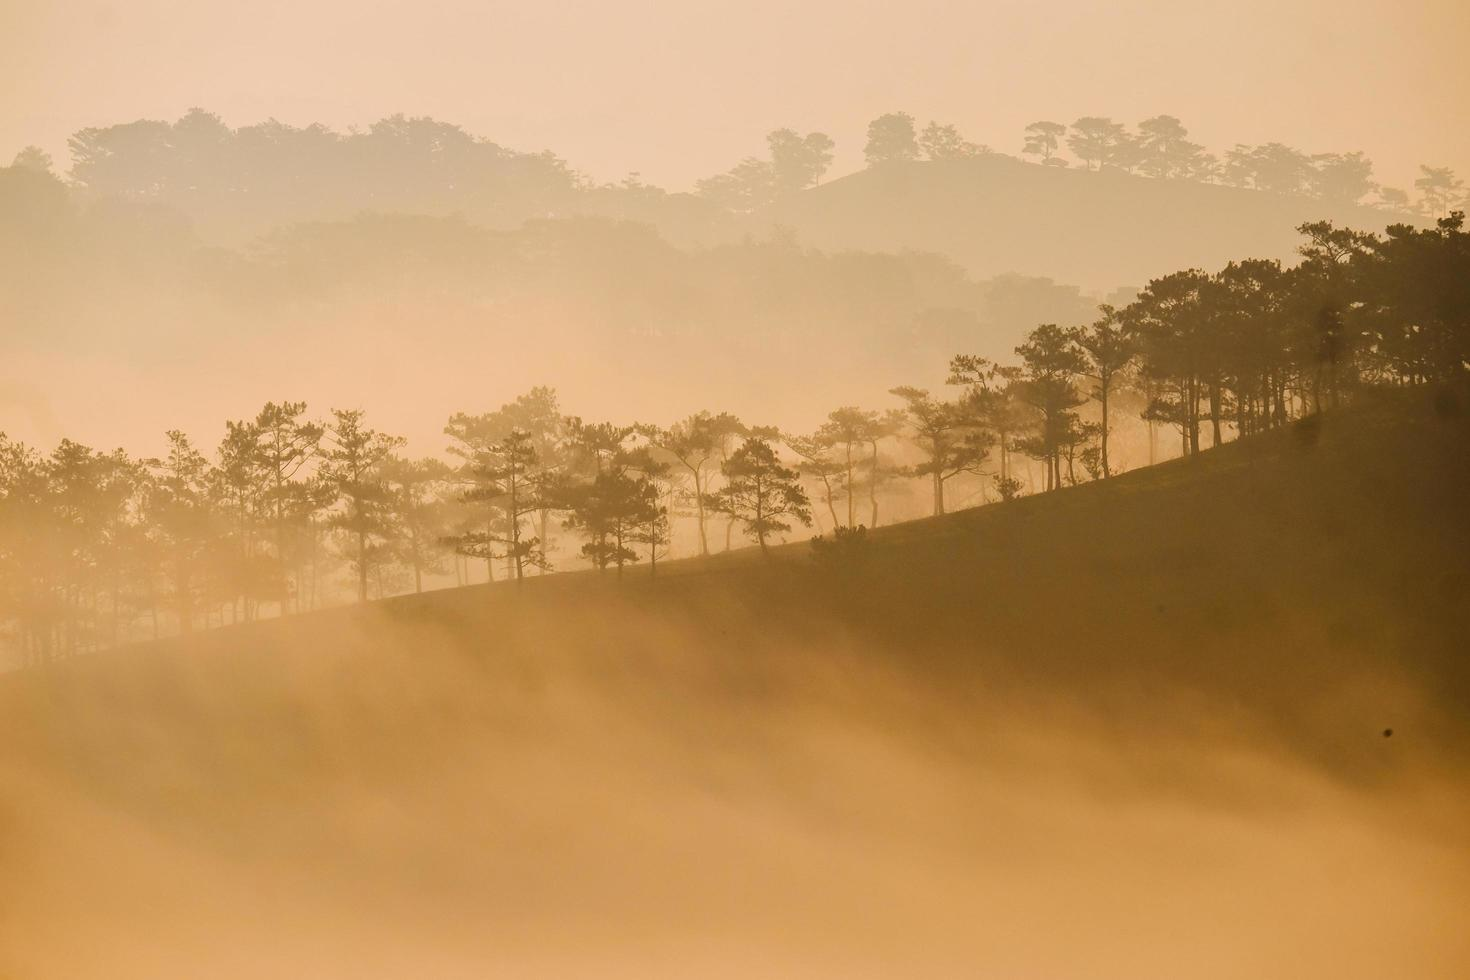 Trees and hills in mist photo